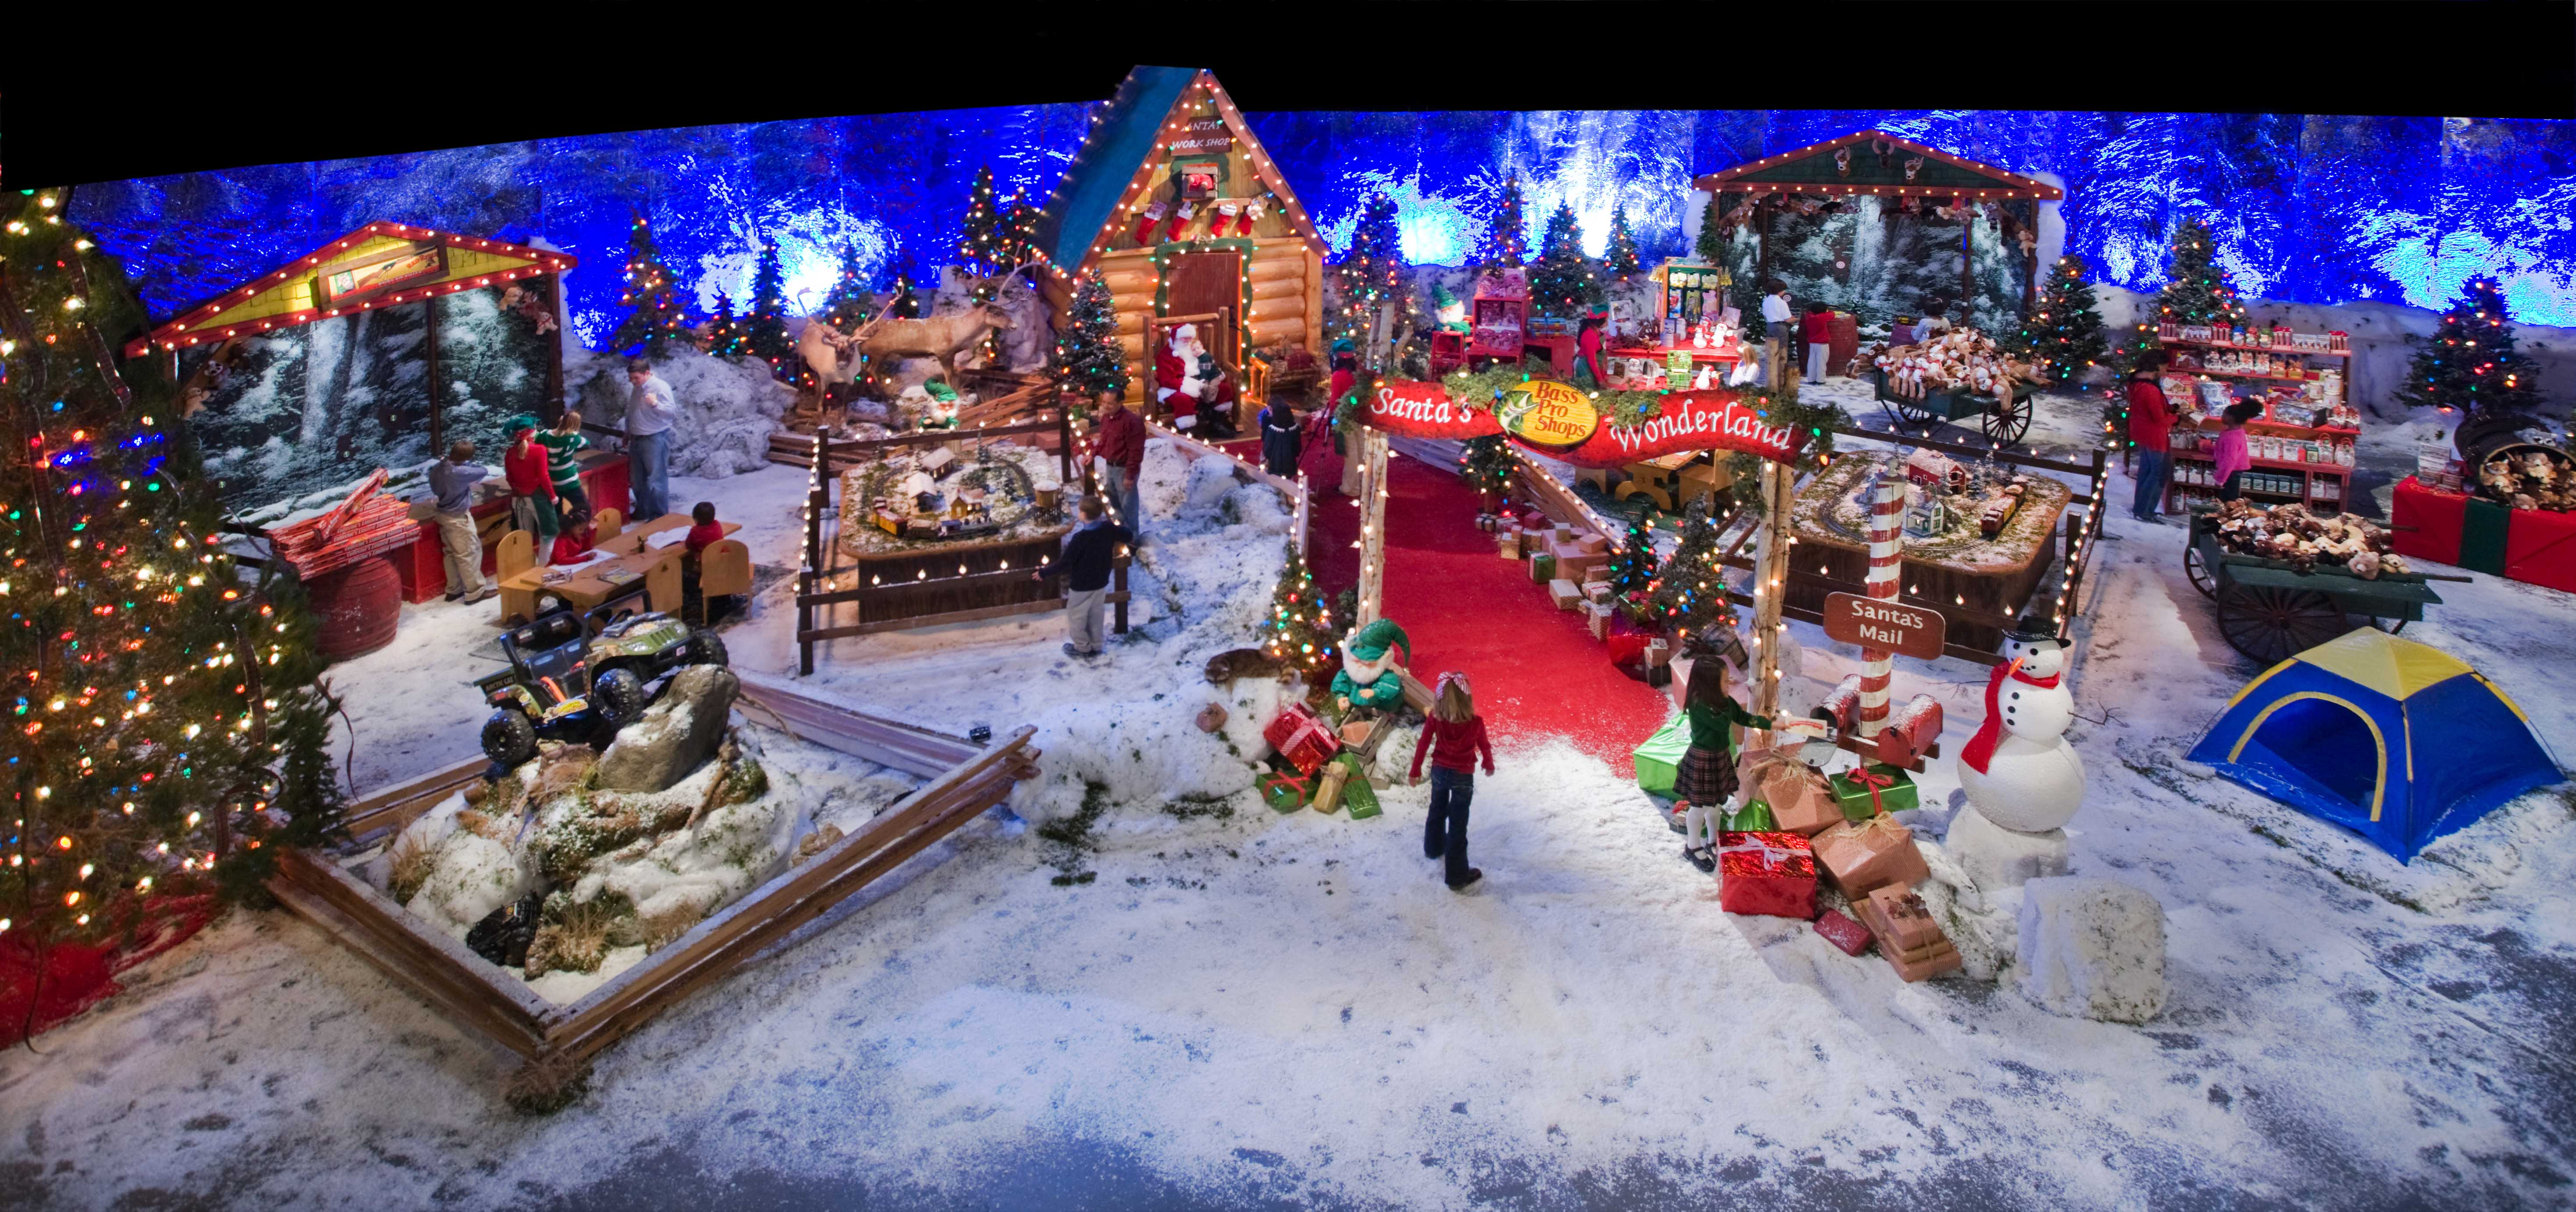 Bass Pro Shops Santa's Wonderland brings the magic of Christmas to ...